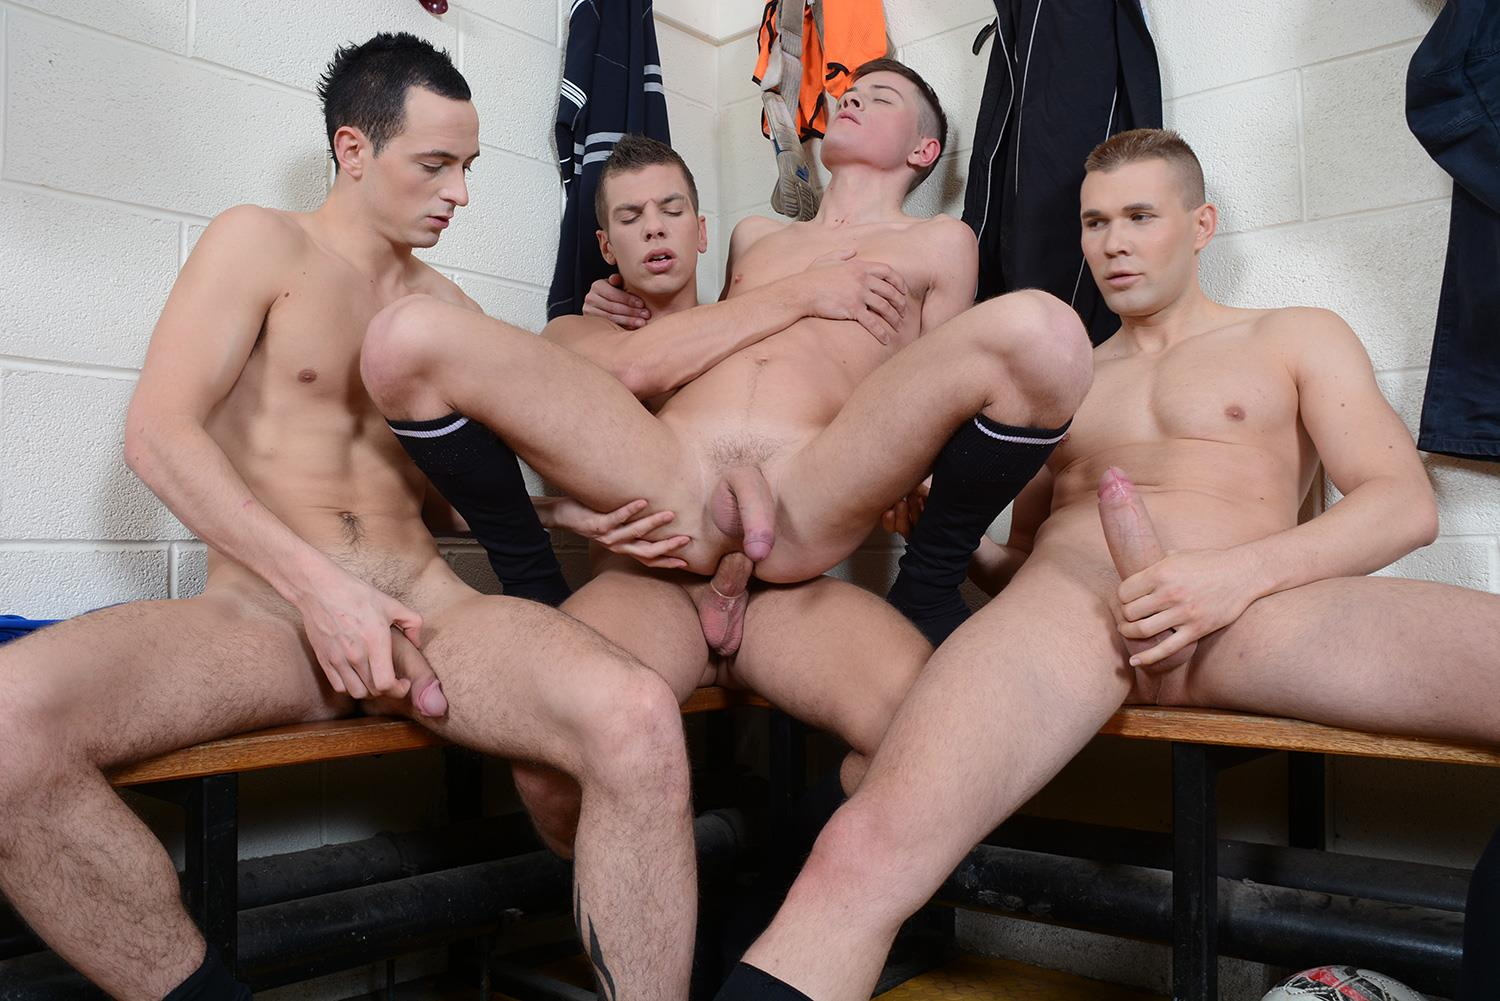 Staxus-Sportladz-Jordan-Fox-and-Luke-Desmond-and-Paul-Walker-and-Skylar-Blu-Amateur-Gay-Porn-09 World Cup Fever: Uncut Soccer Players Fucking In The Locker Room